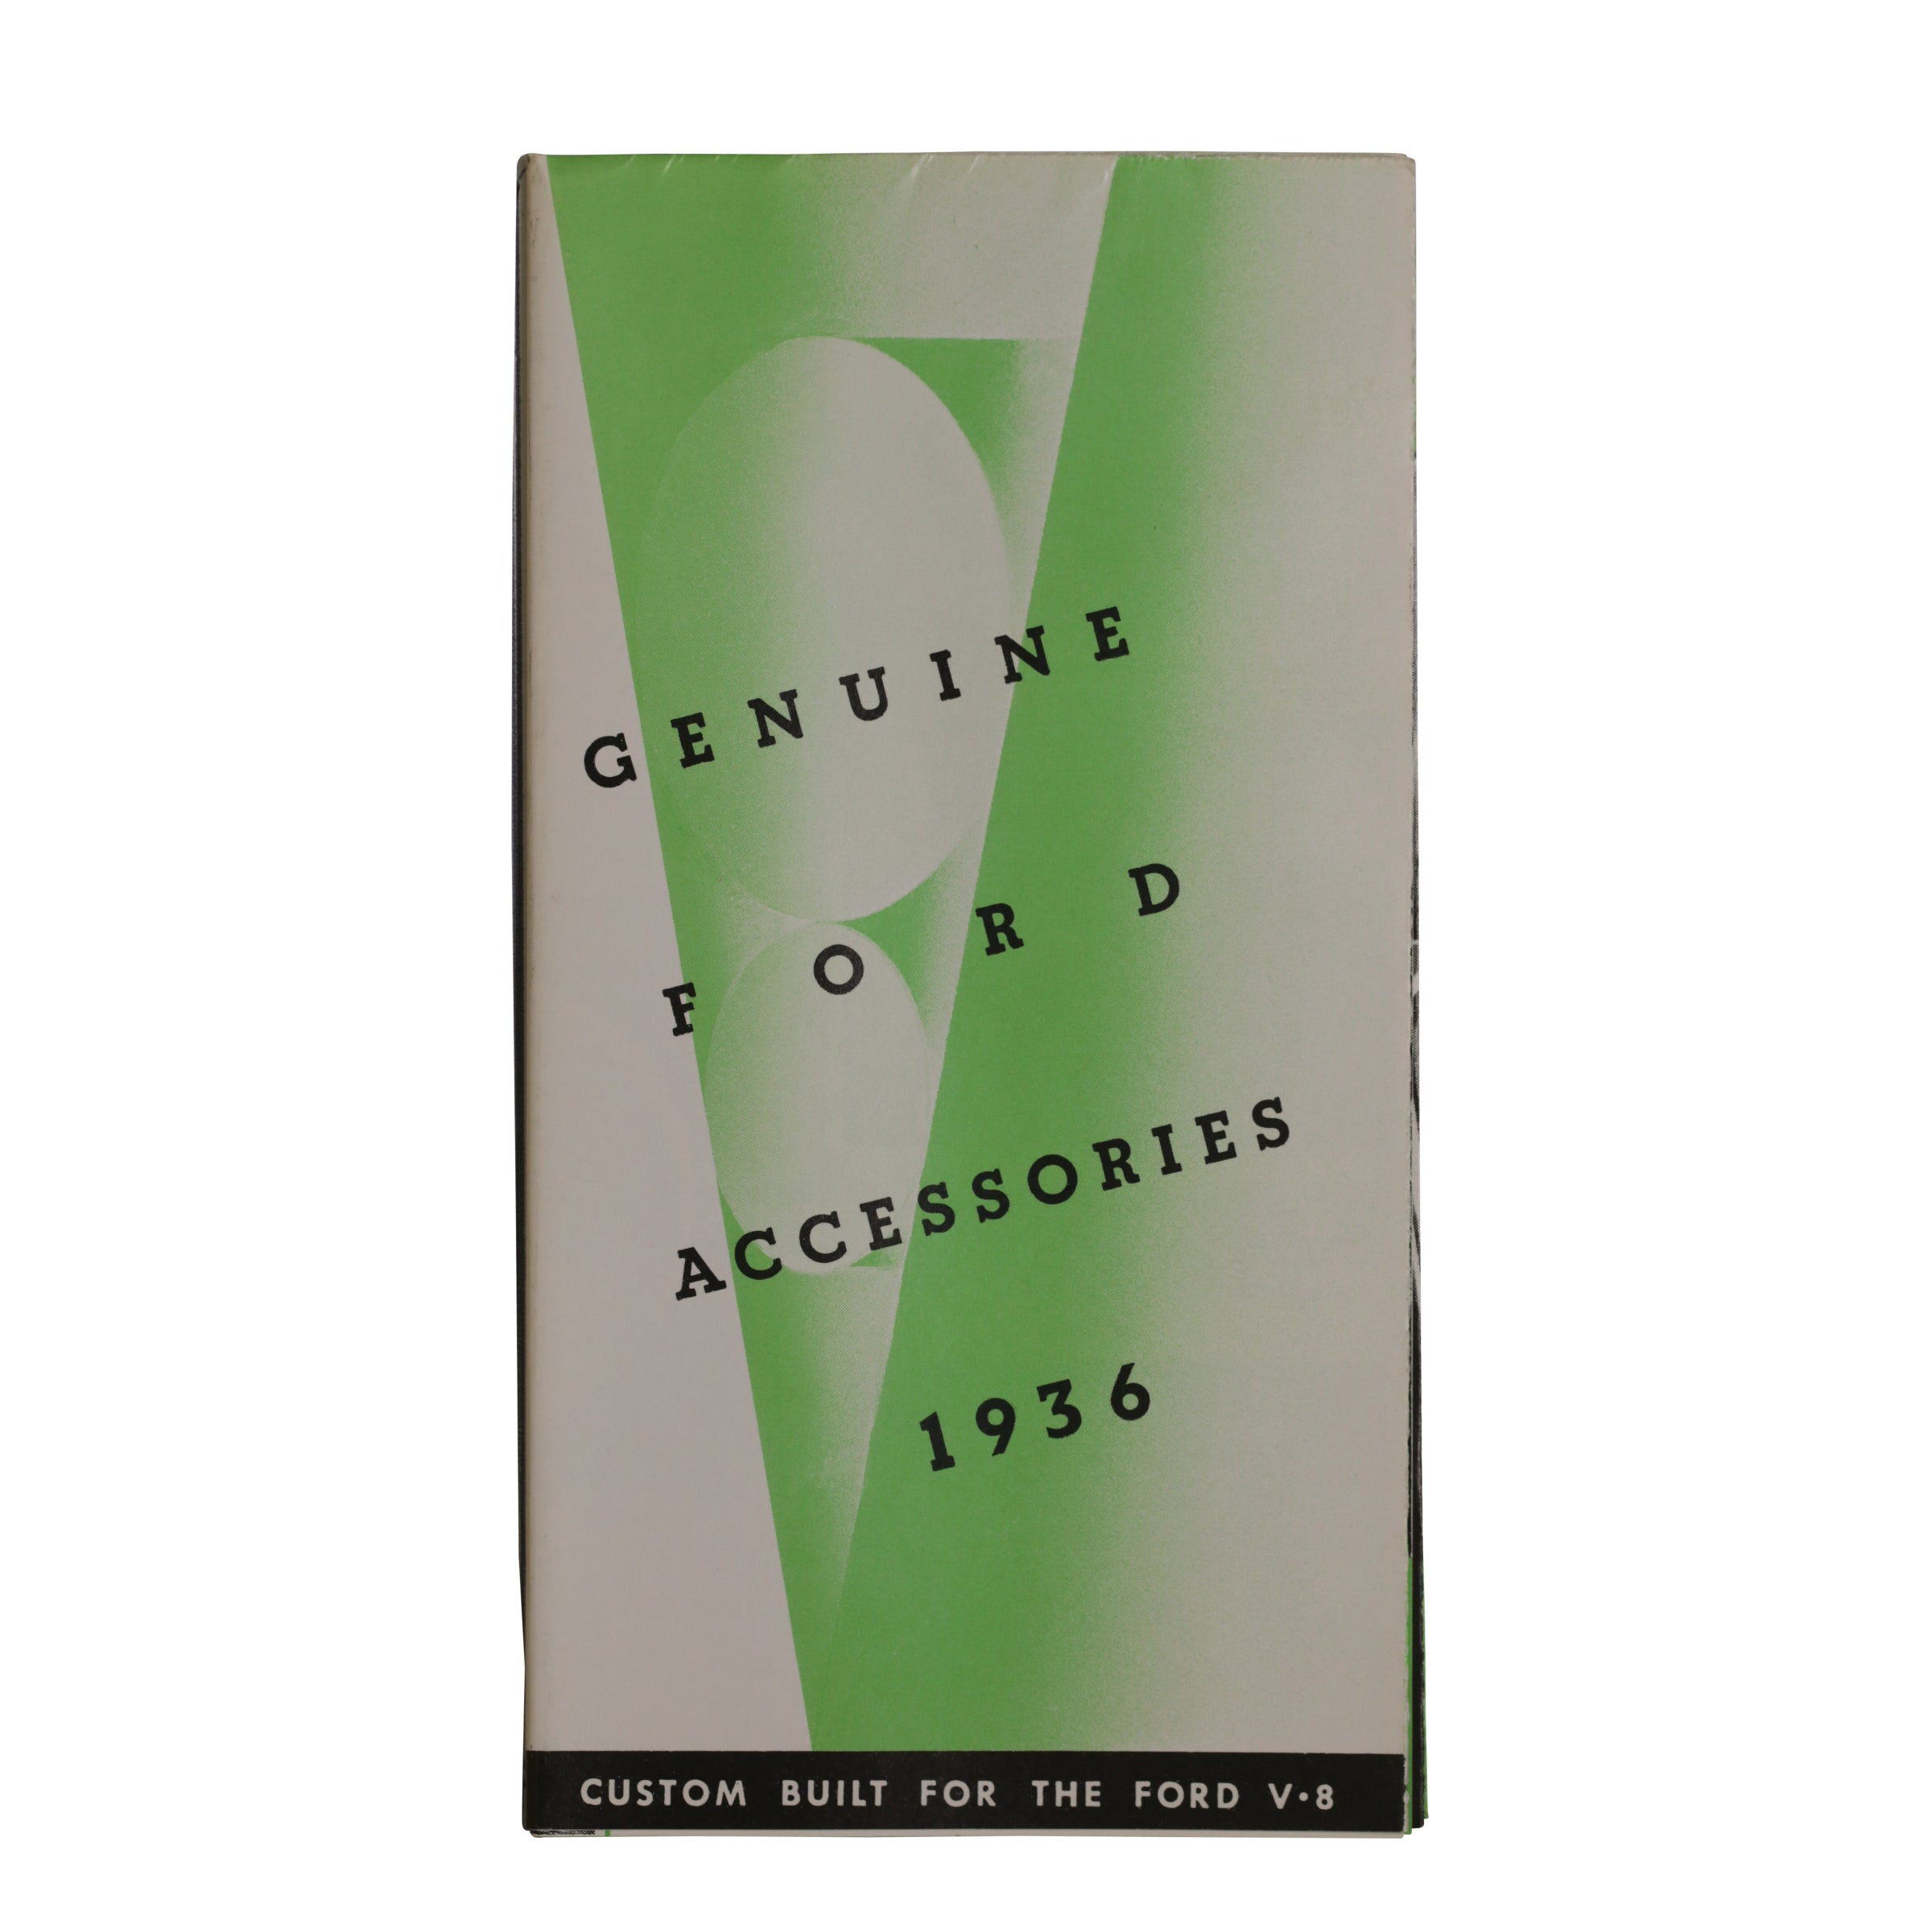 Accessories Brochure  • 1936 Ford